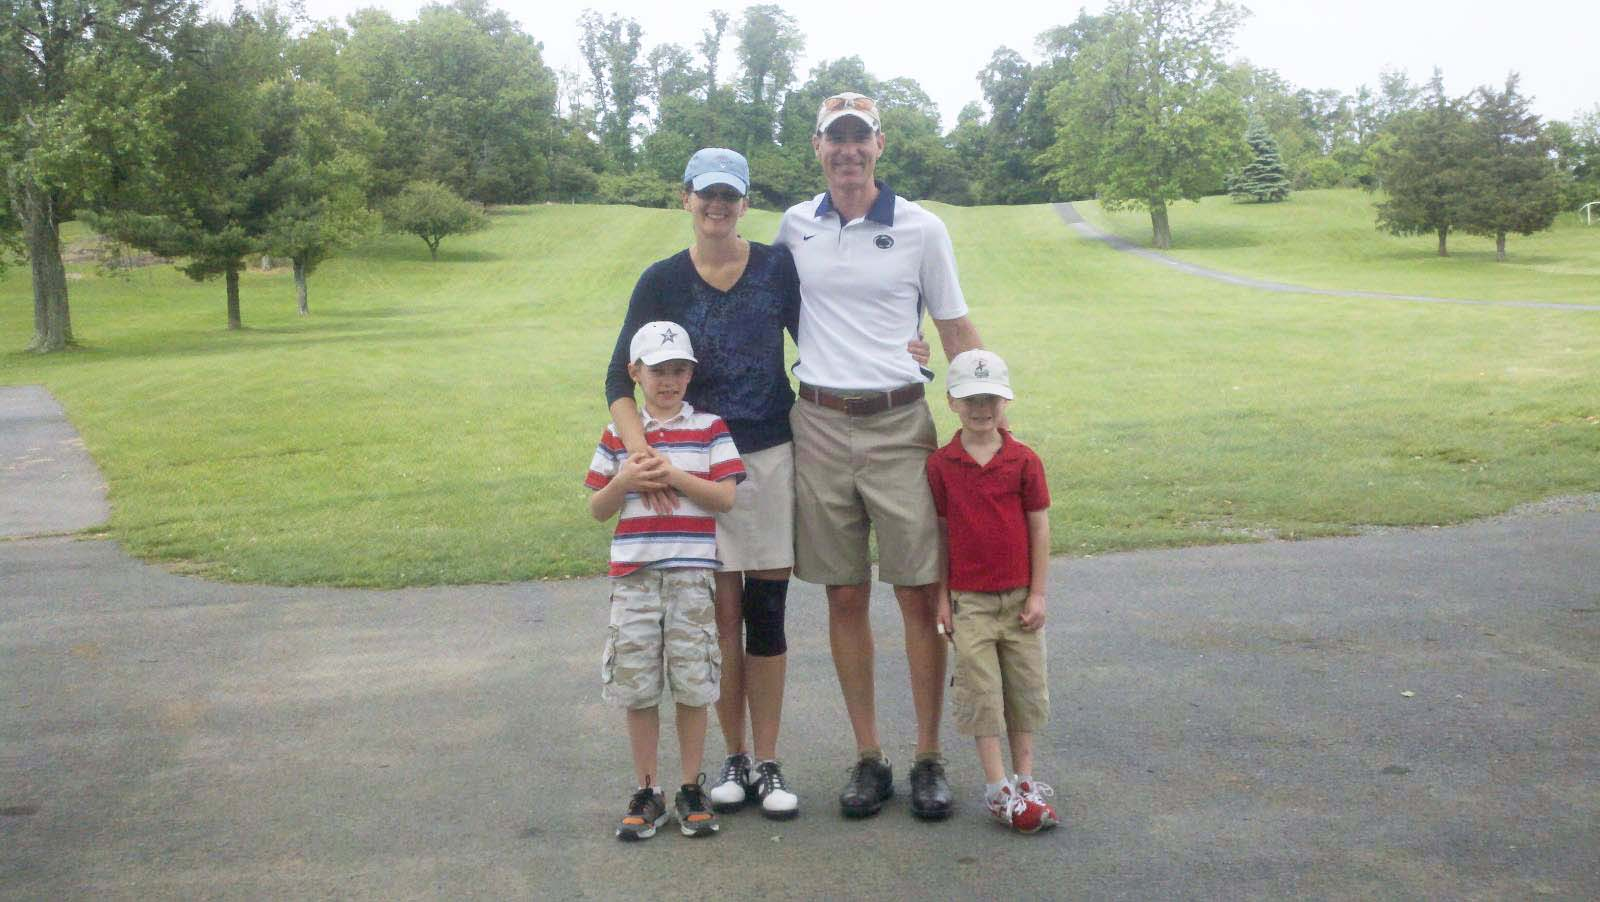 A family enjoys a round of golf at Manor Golf Club